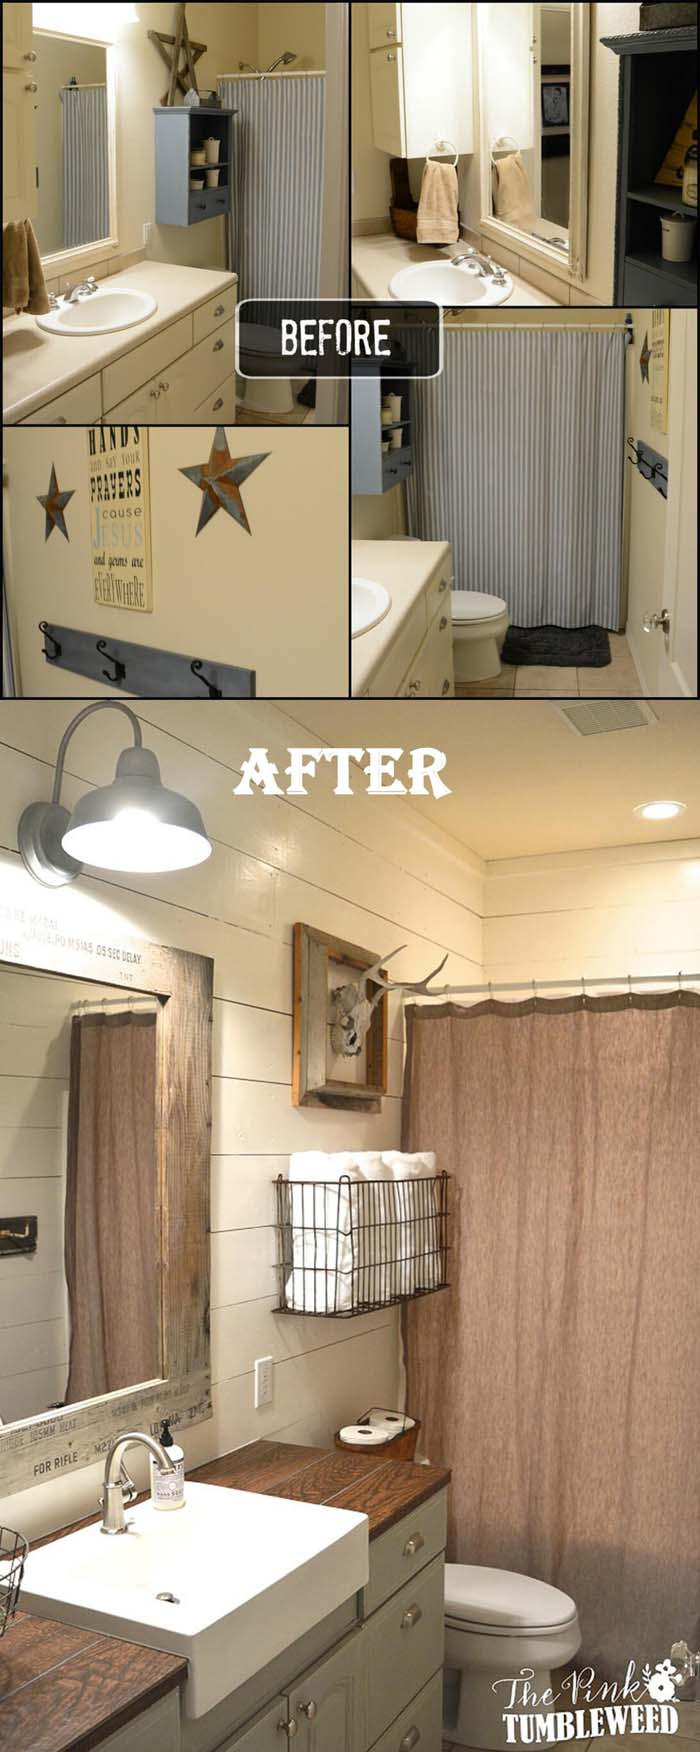 Exchange Dated Country for a Chic Western Theme #bathroom #makeover #decorhomeideas